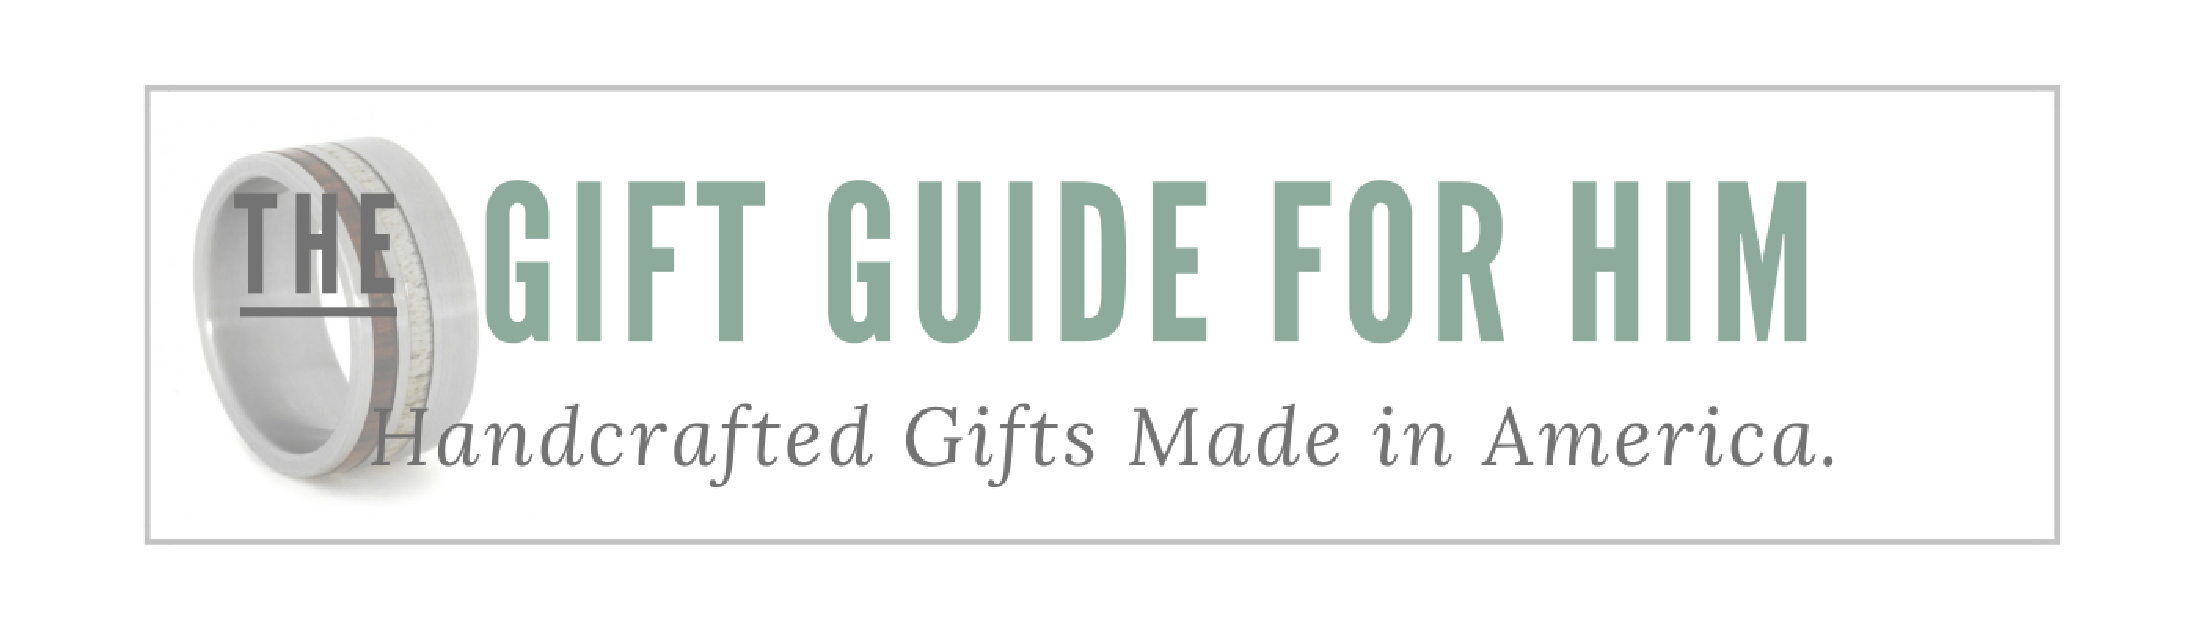 Gift Guide Landing Page Graphics